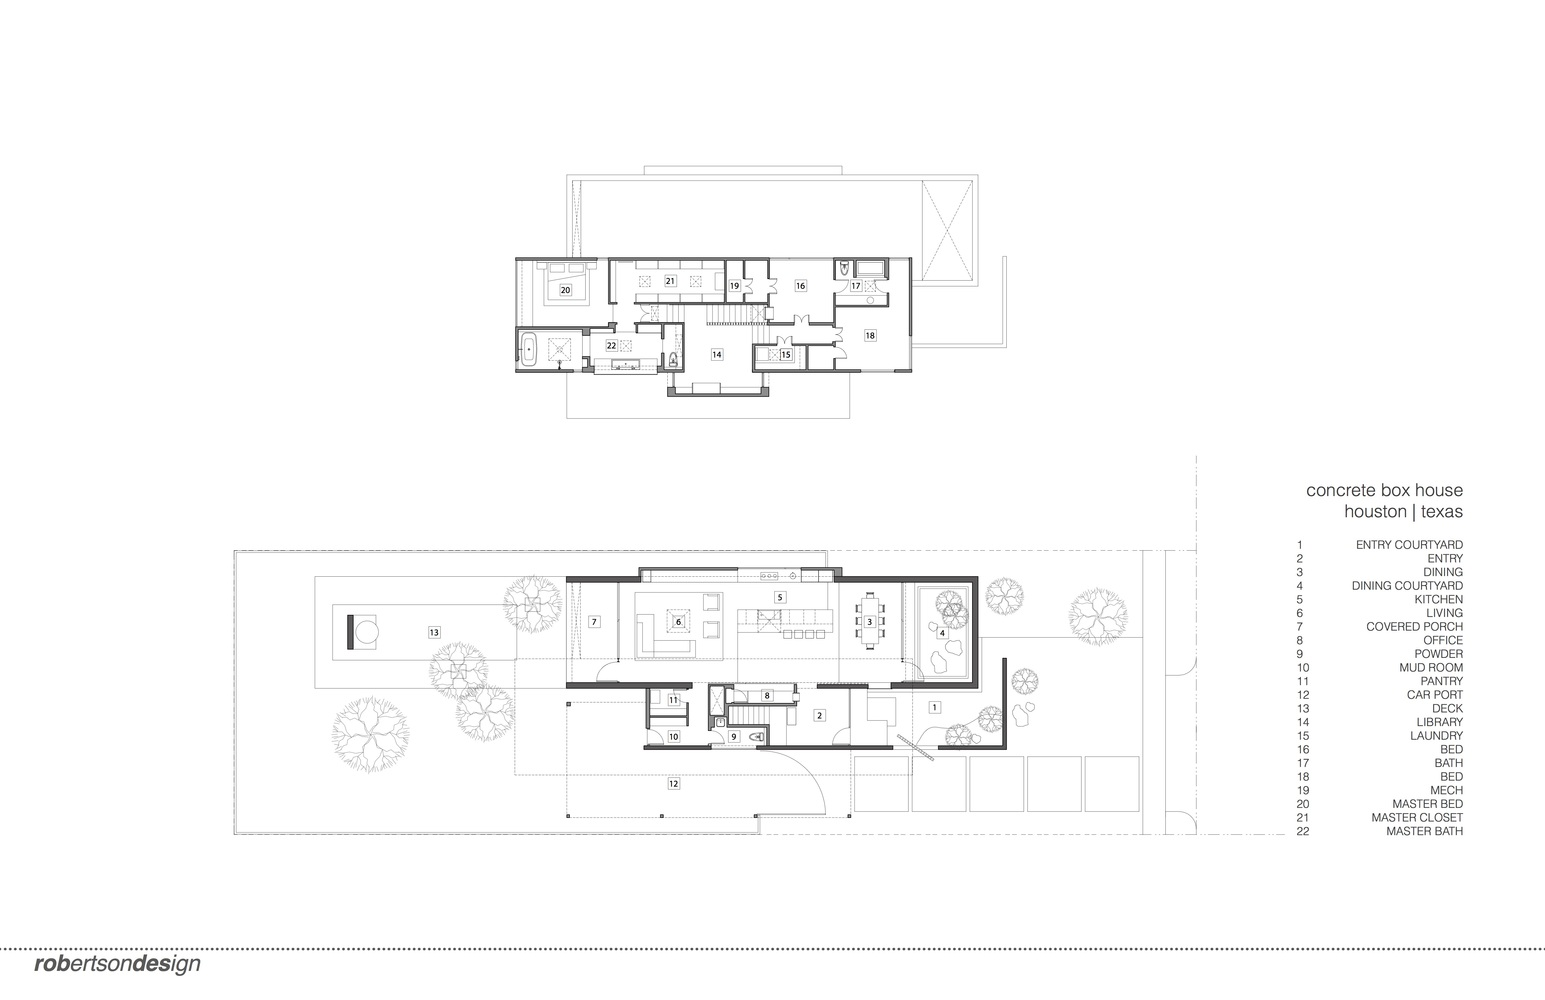 Gallery of Concrete Box House / Robertson Design - 32 on icon house, chart house, label house,